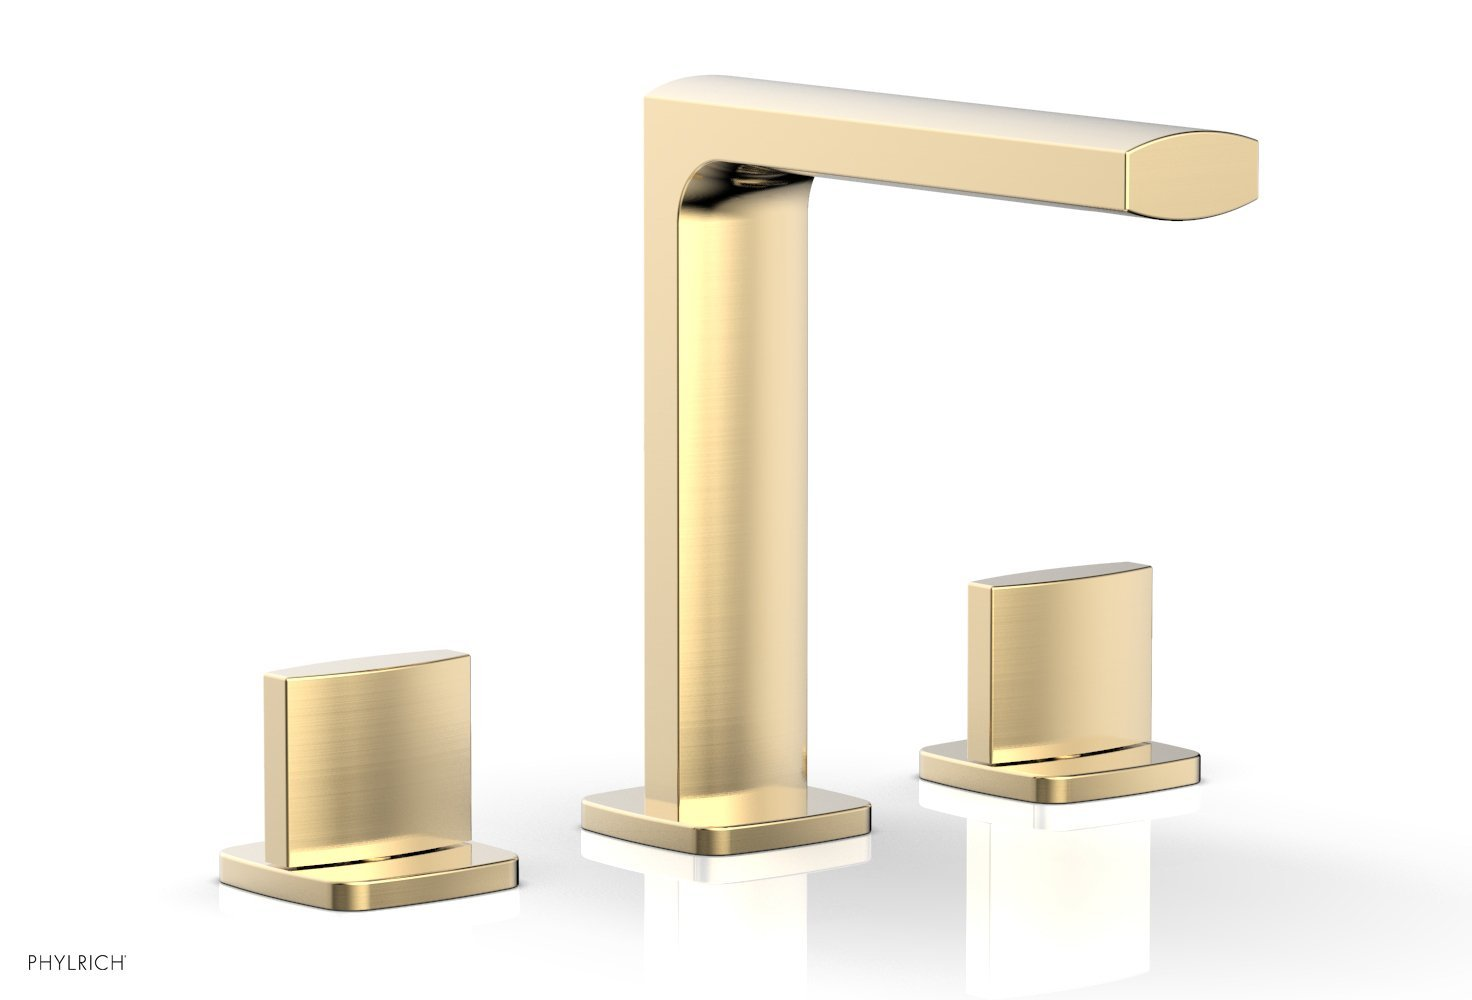 Phylrich 181-01-004 RADI Widespread Faucet - Blade Handle High Spout - Satin Brass